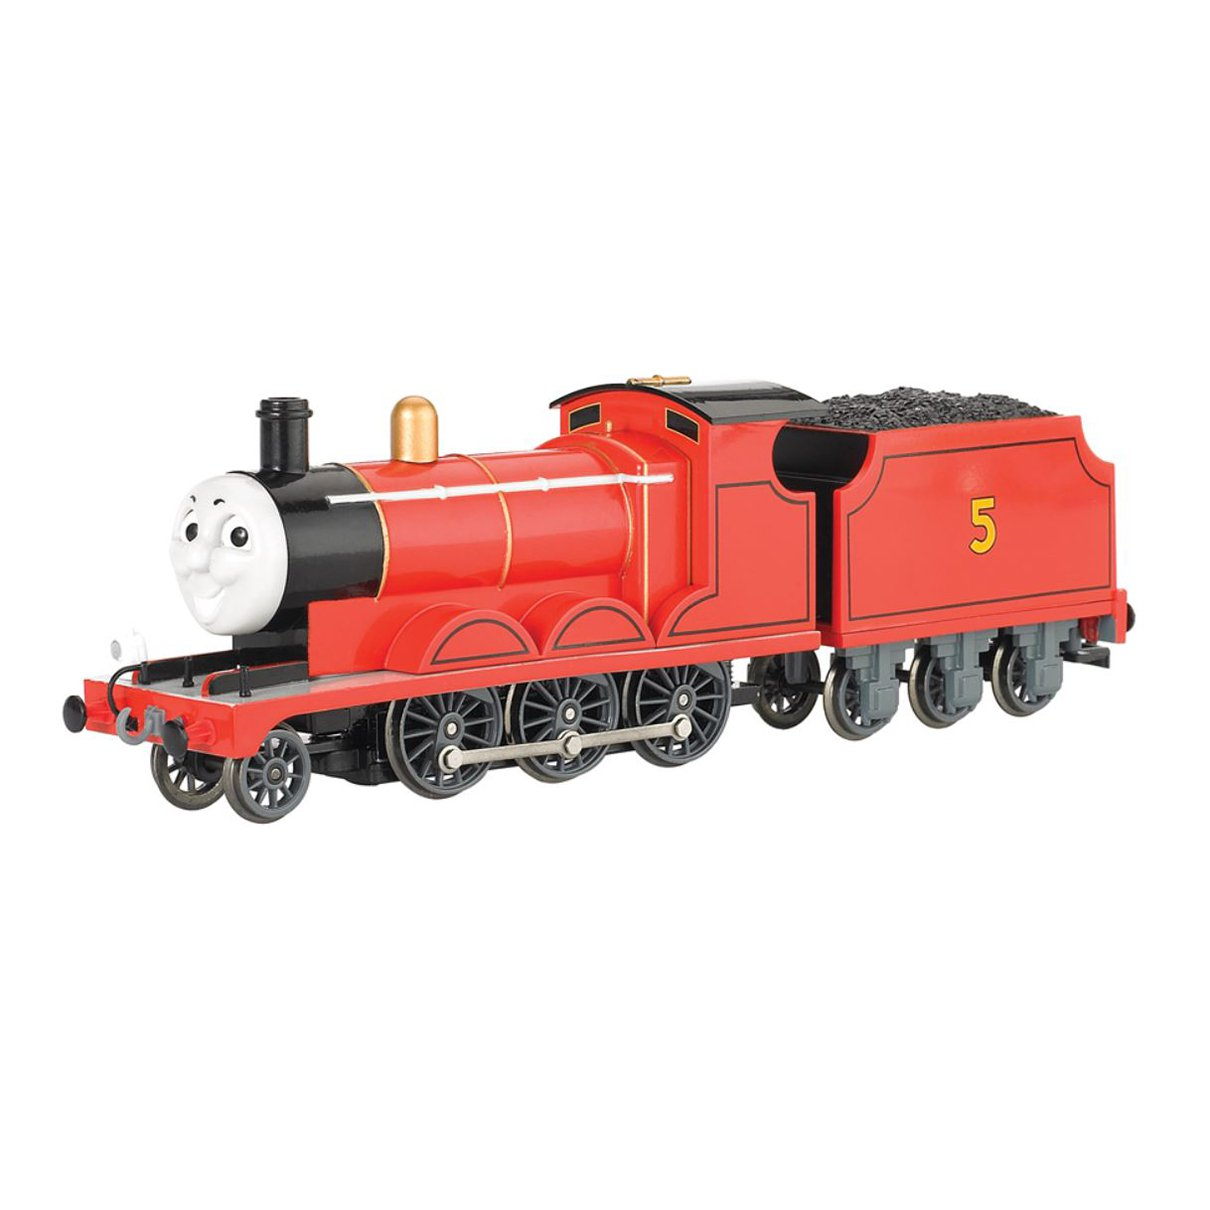 Bachmann Trains Thomas and Friends James The Red Engine Locomotive with Moving Eyes, HO Scale Train